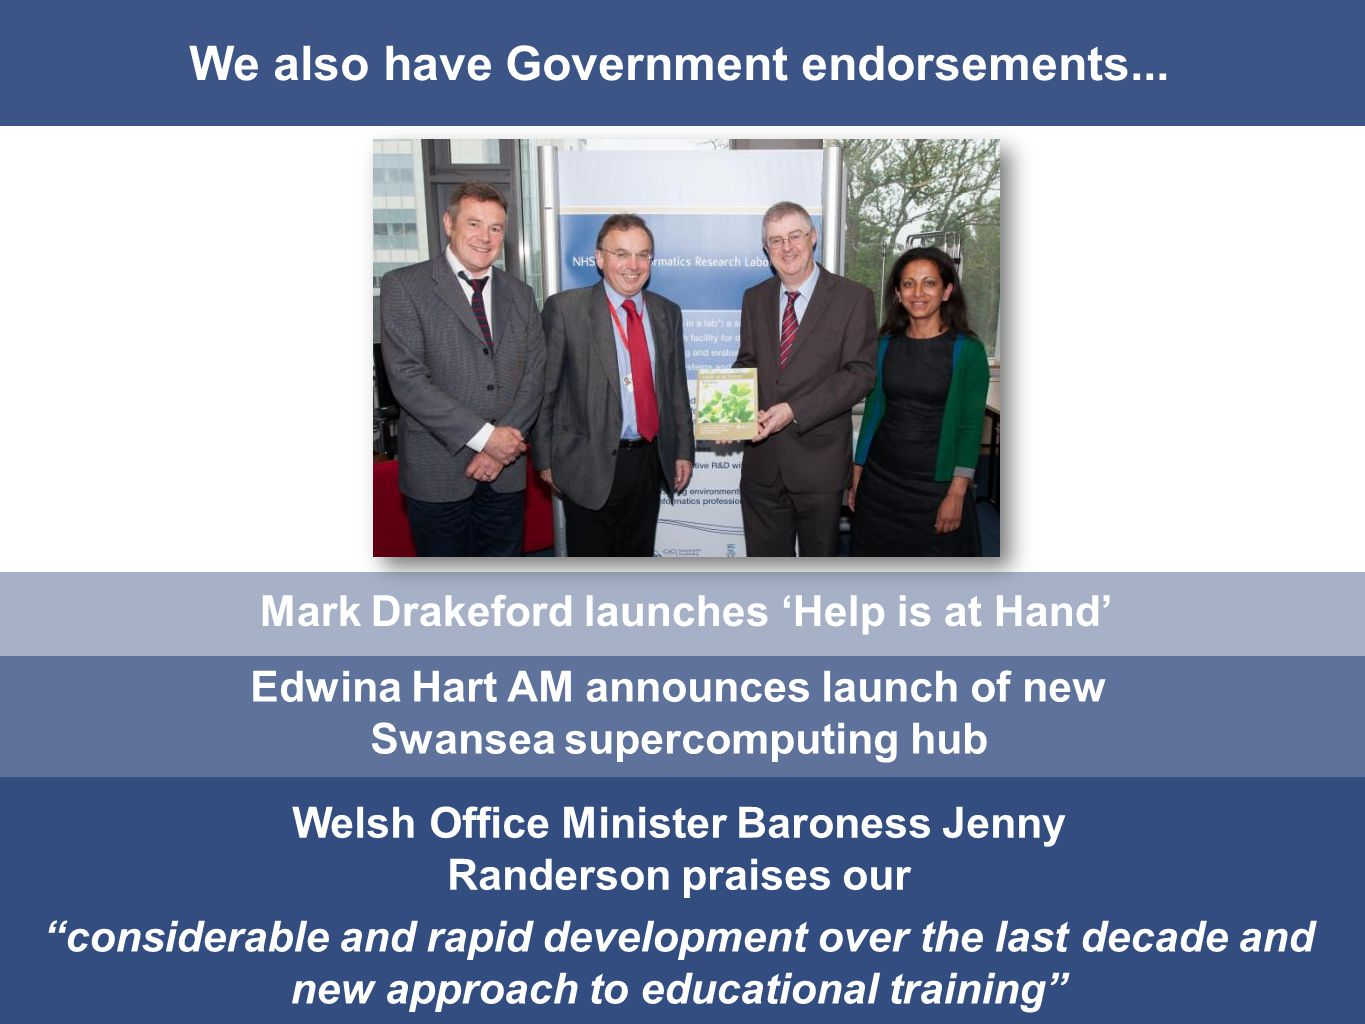 We also have Government endorsements... Mark Drakeford launches Help is at Hand Edwina Hart AM announces launch of new Swansea supercomputing hub Wels